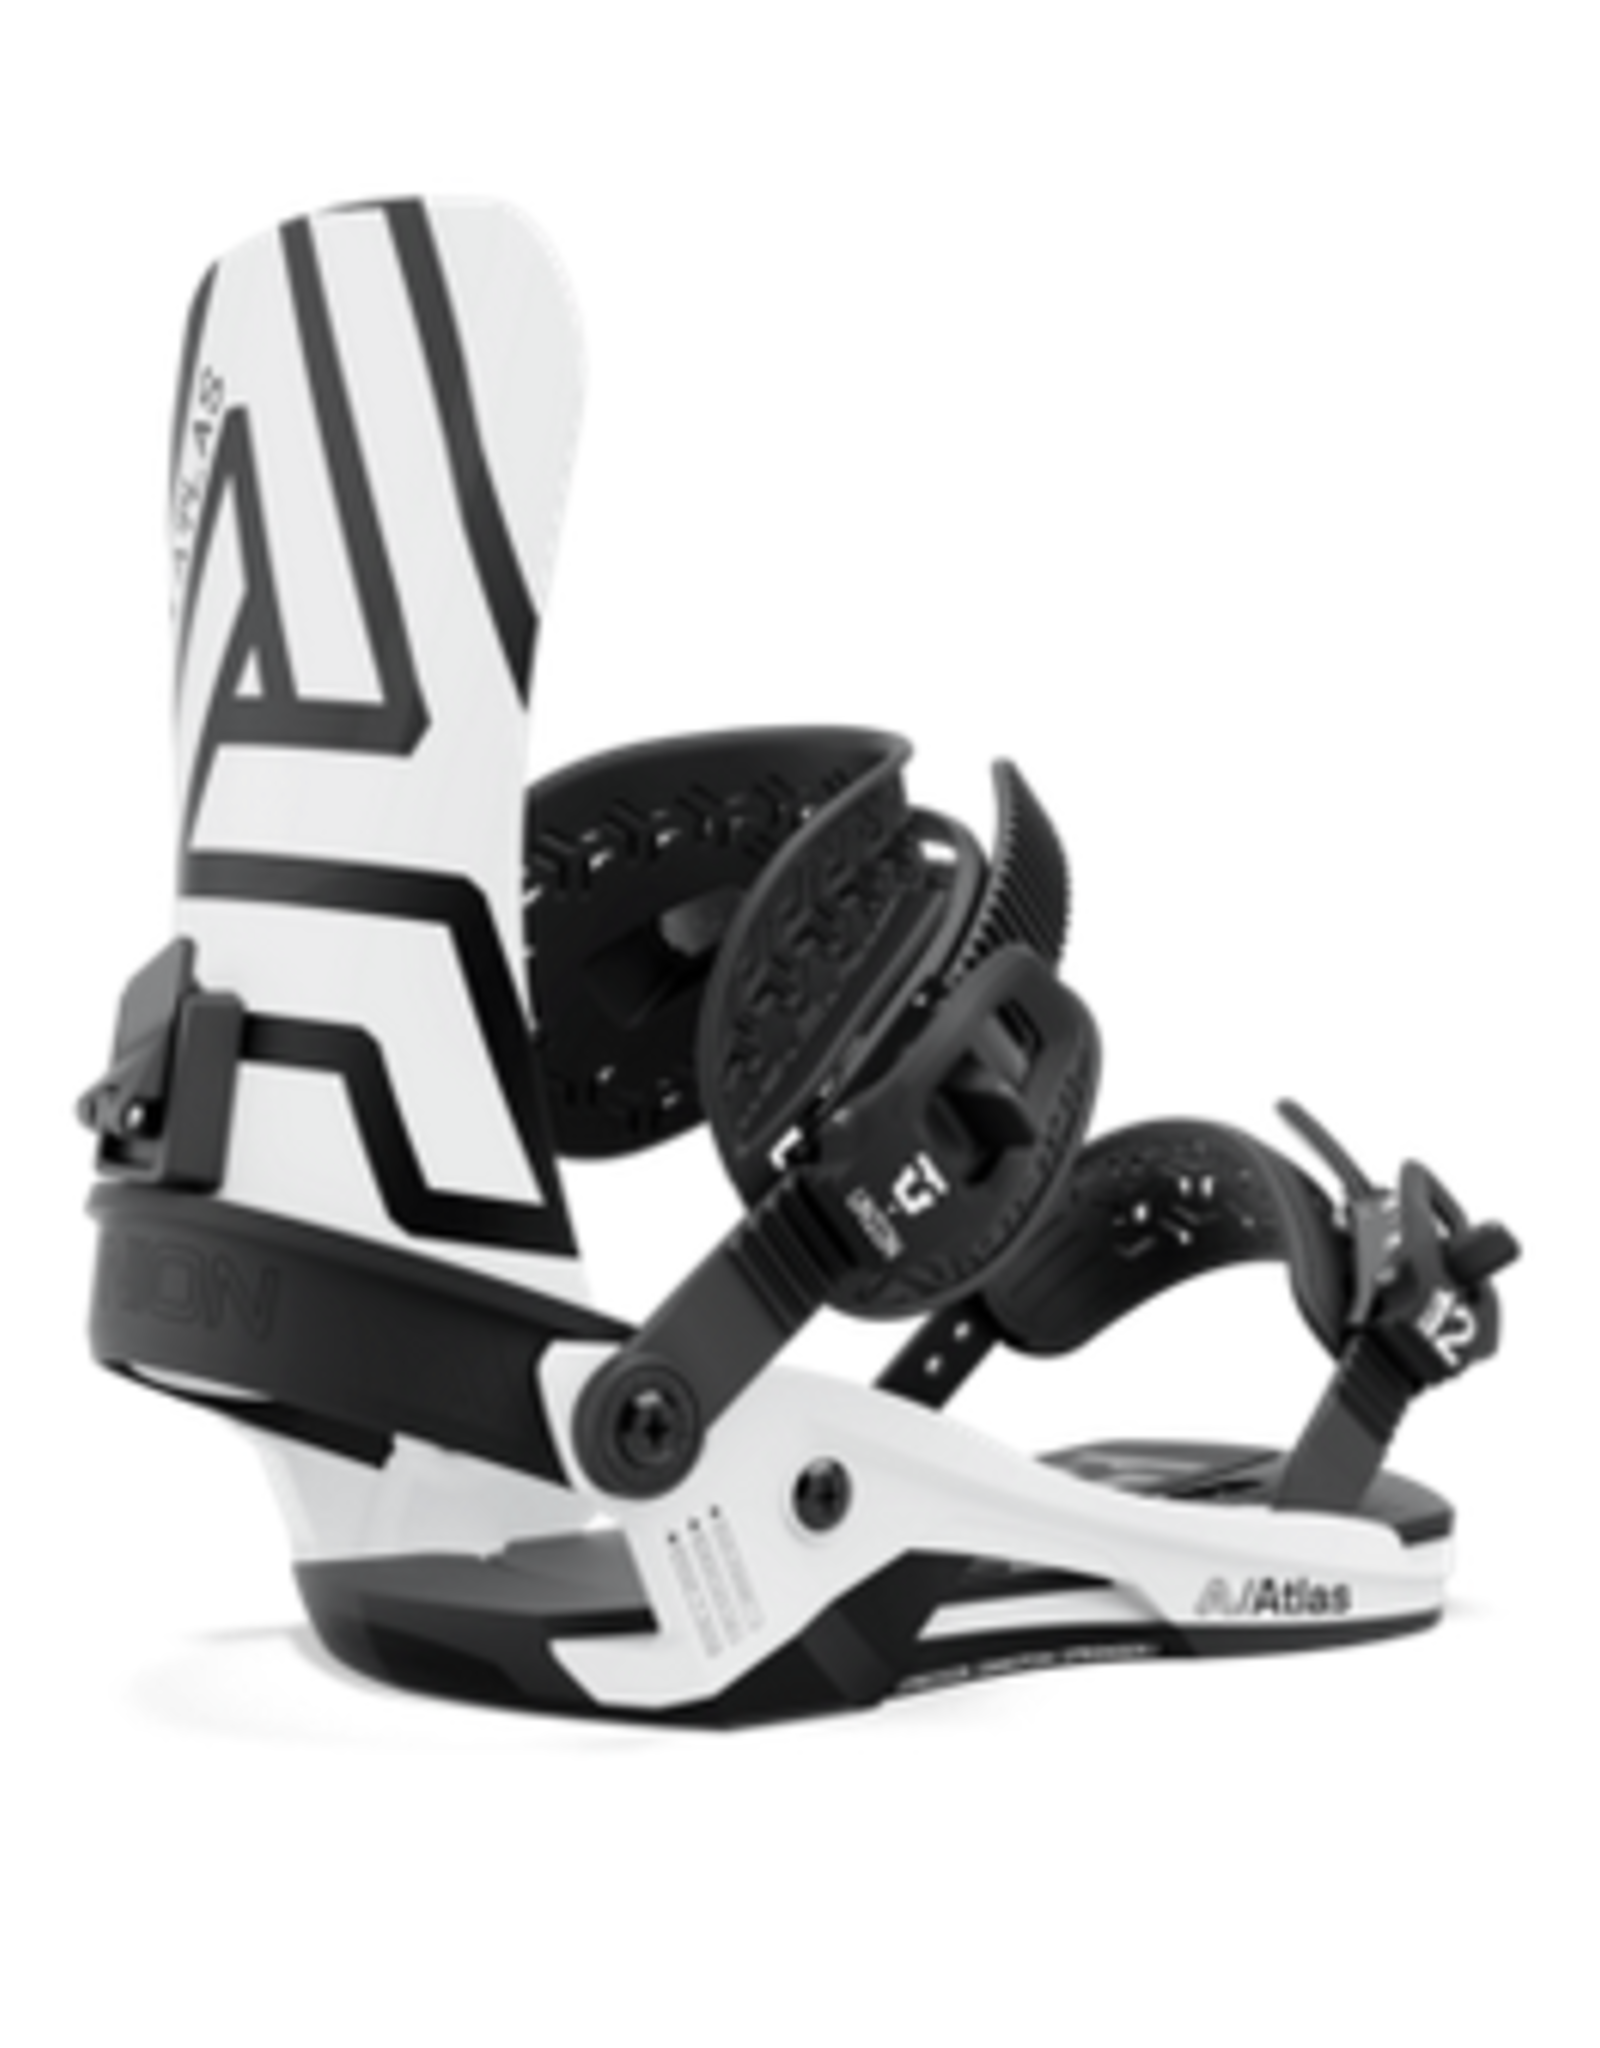 UNION UNION 2022 ATLAS BINDINGS